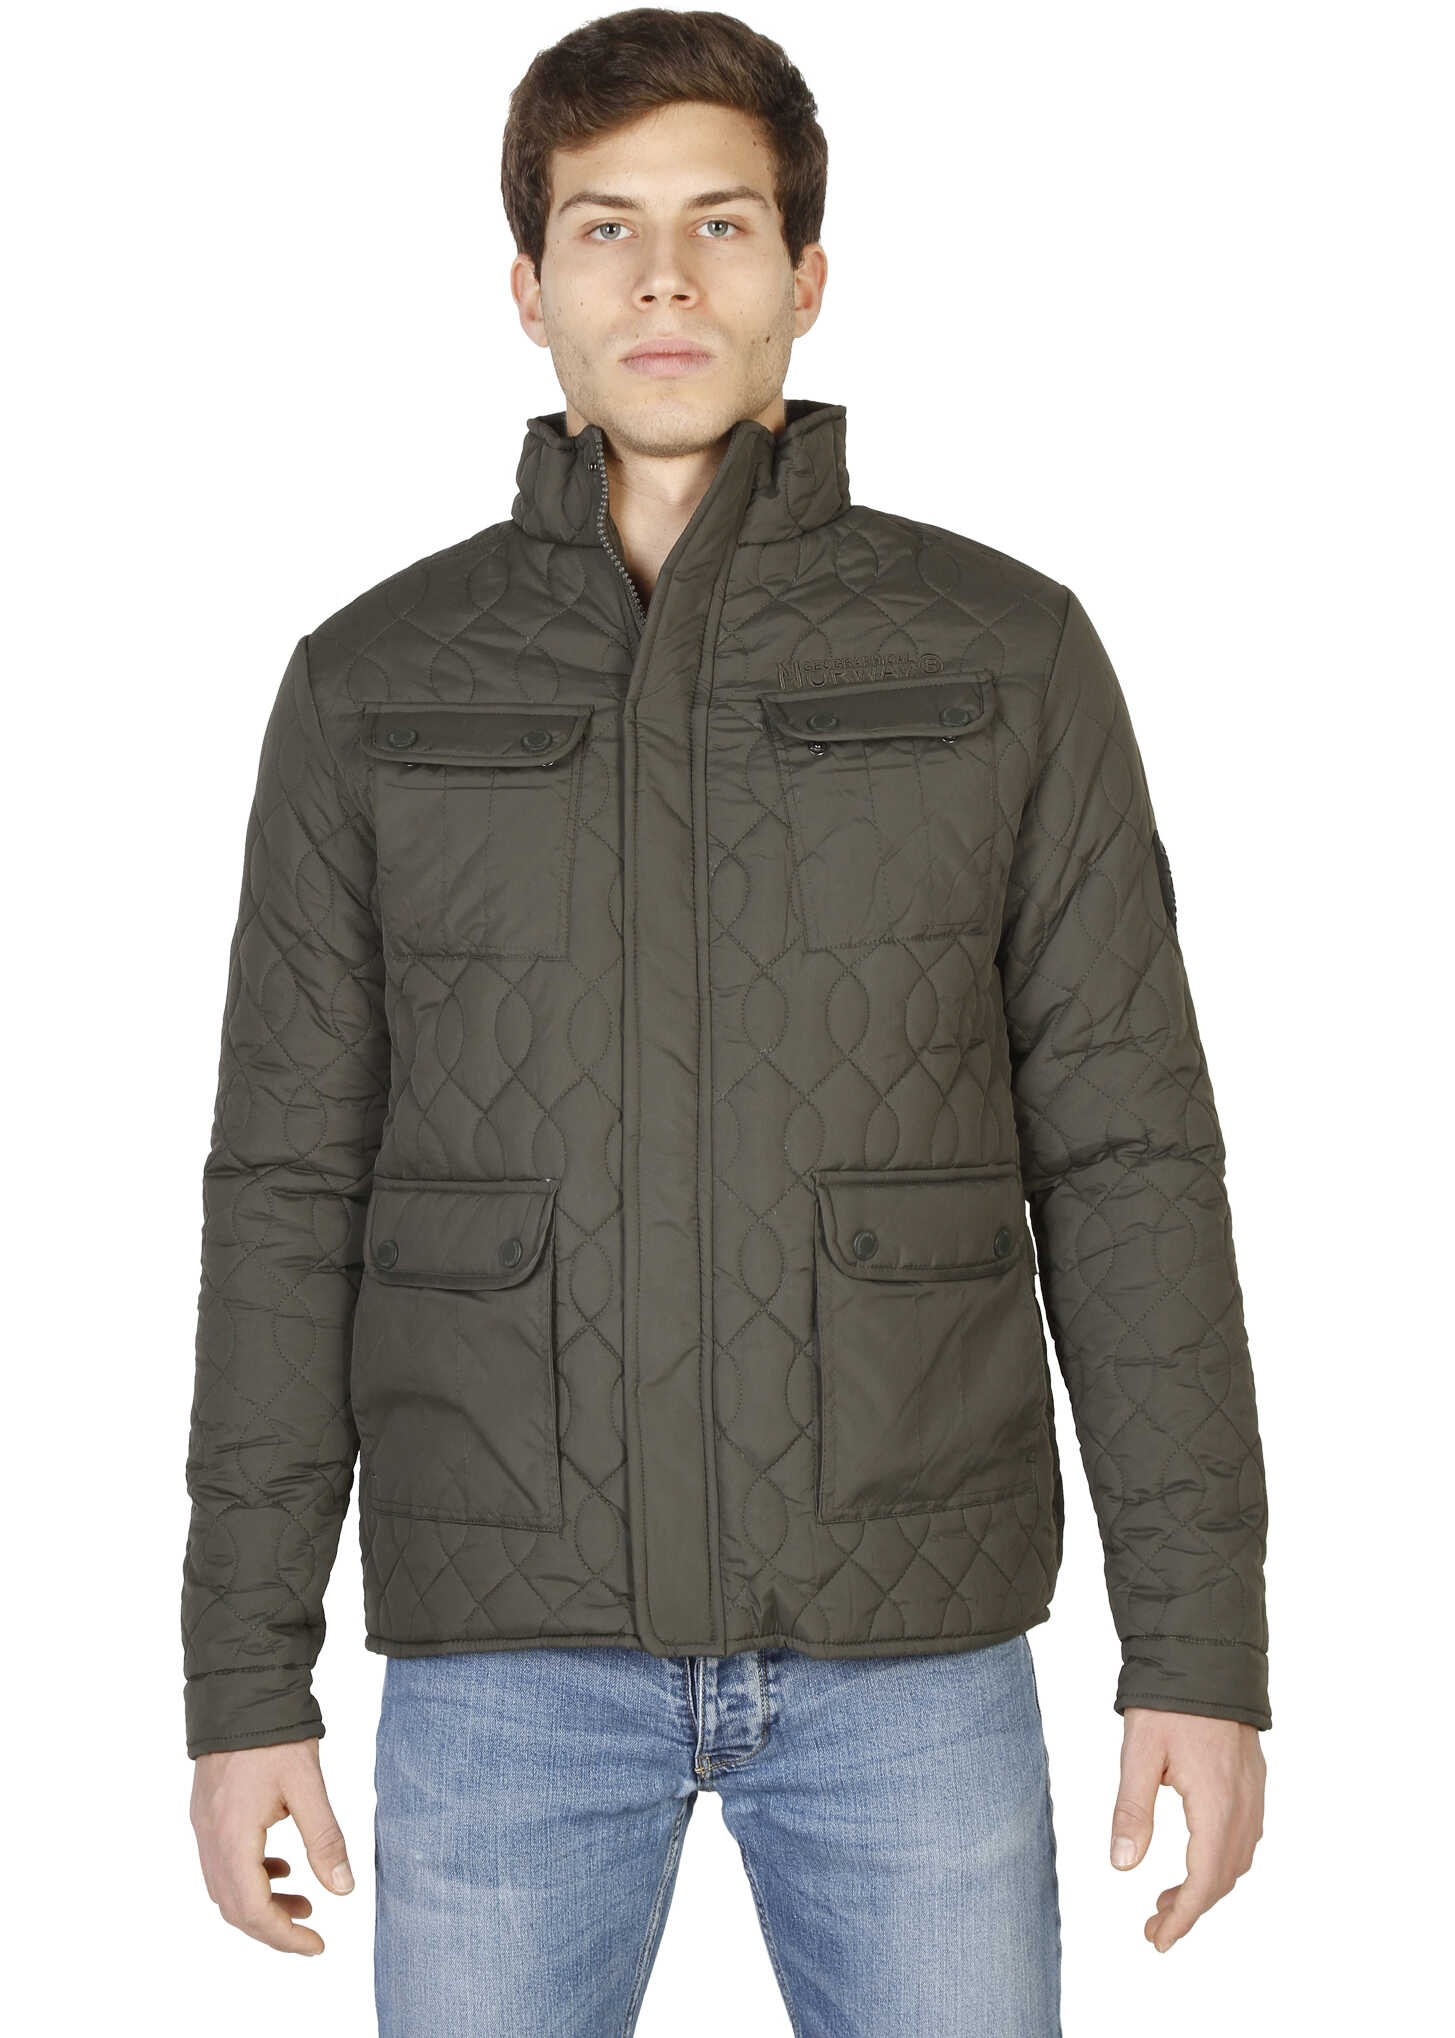 Geographical Norway Biturbo_Man Green